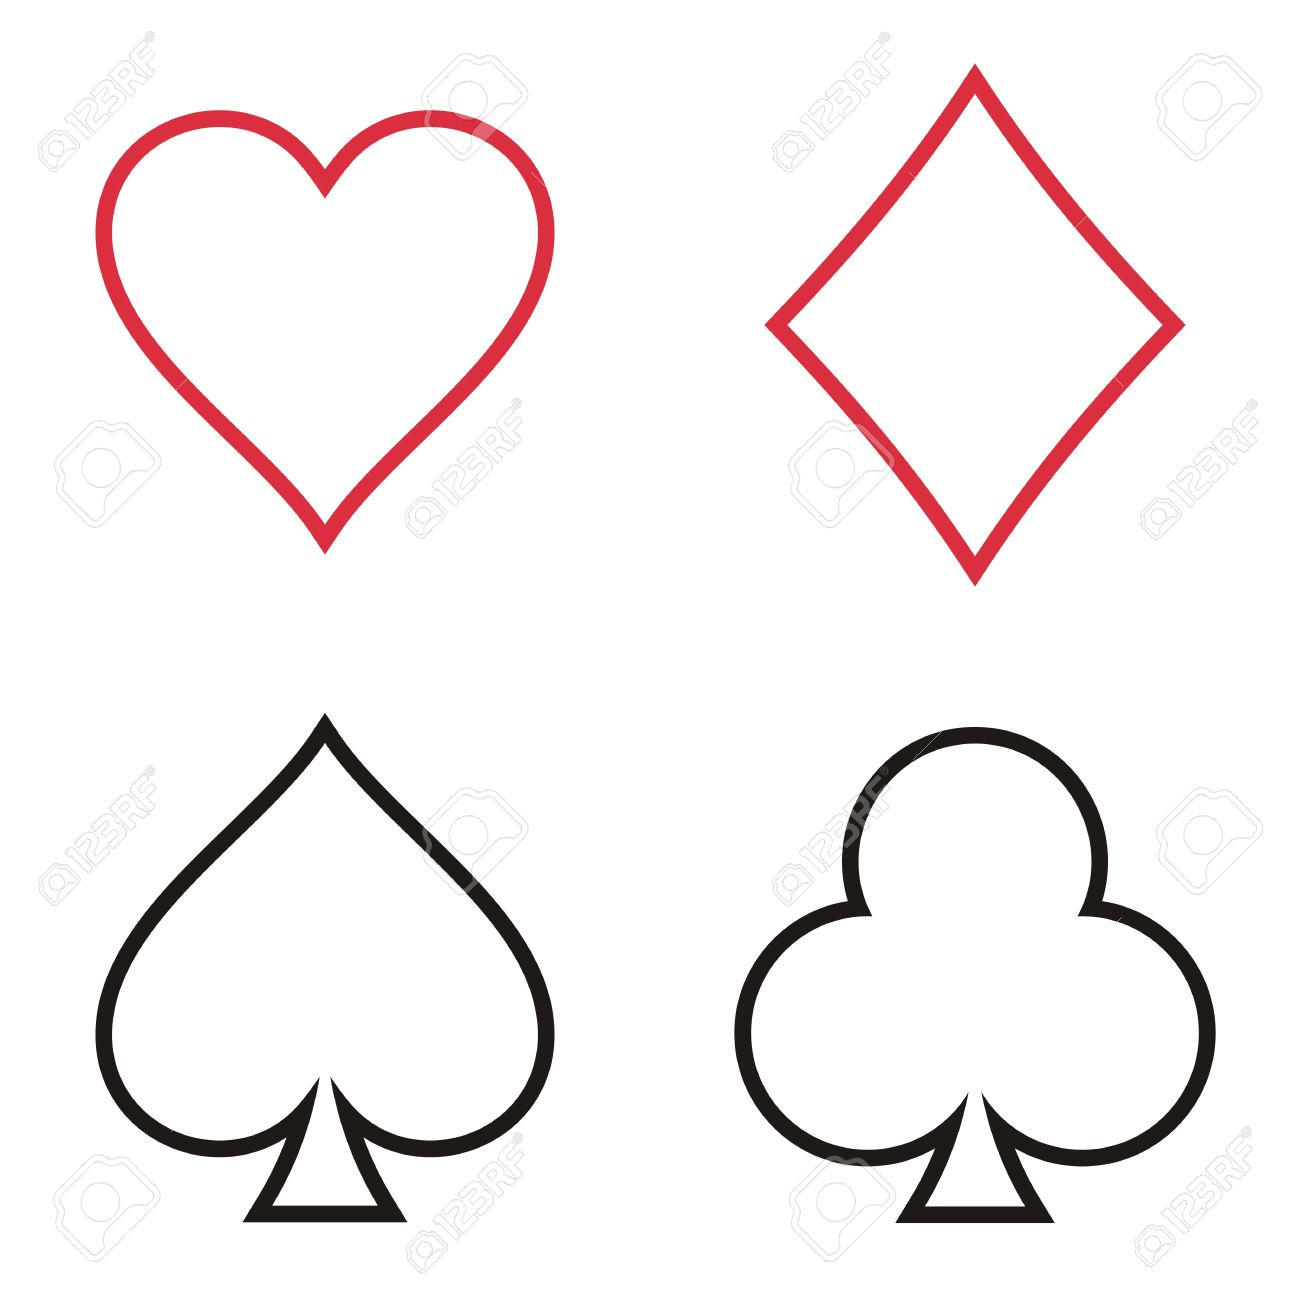 playing cards outline symbols collection on white background royalty rh 123rf com playing cards vector images playing cards vector free